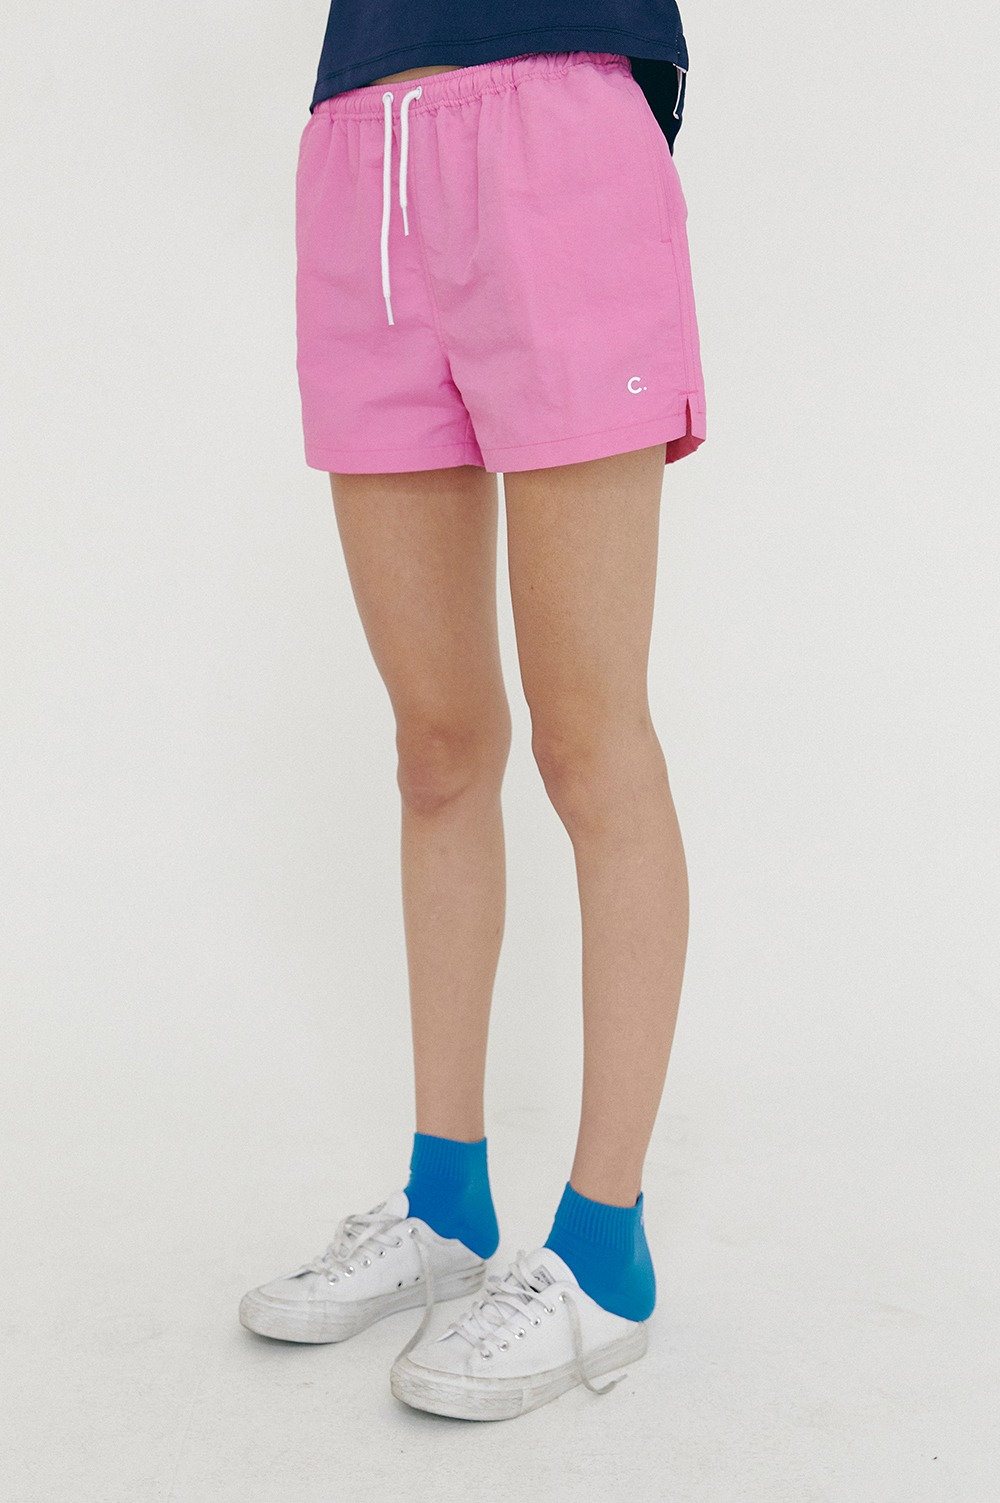 clove - [5/10(월) 예약배송][SS21 clove] New Summer Shorts_Women Pink